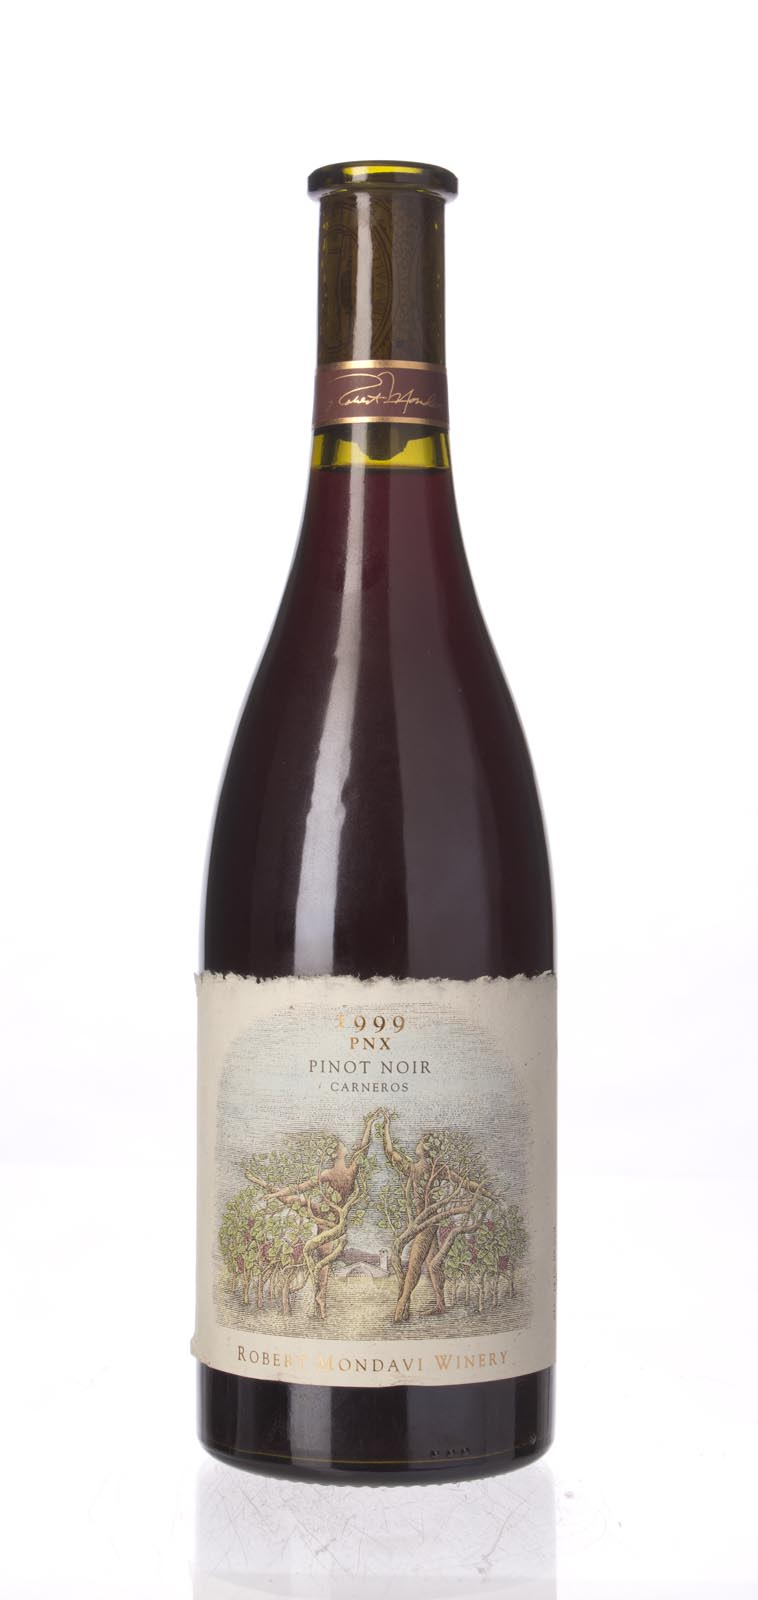 Robert Mondavi Pinot Noir PNX 1999, 750mL () from The BPW - Merchants of rare and fine wines.